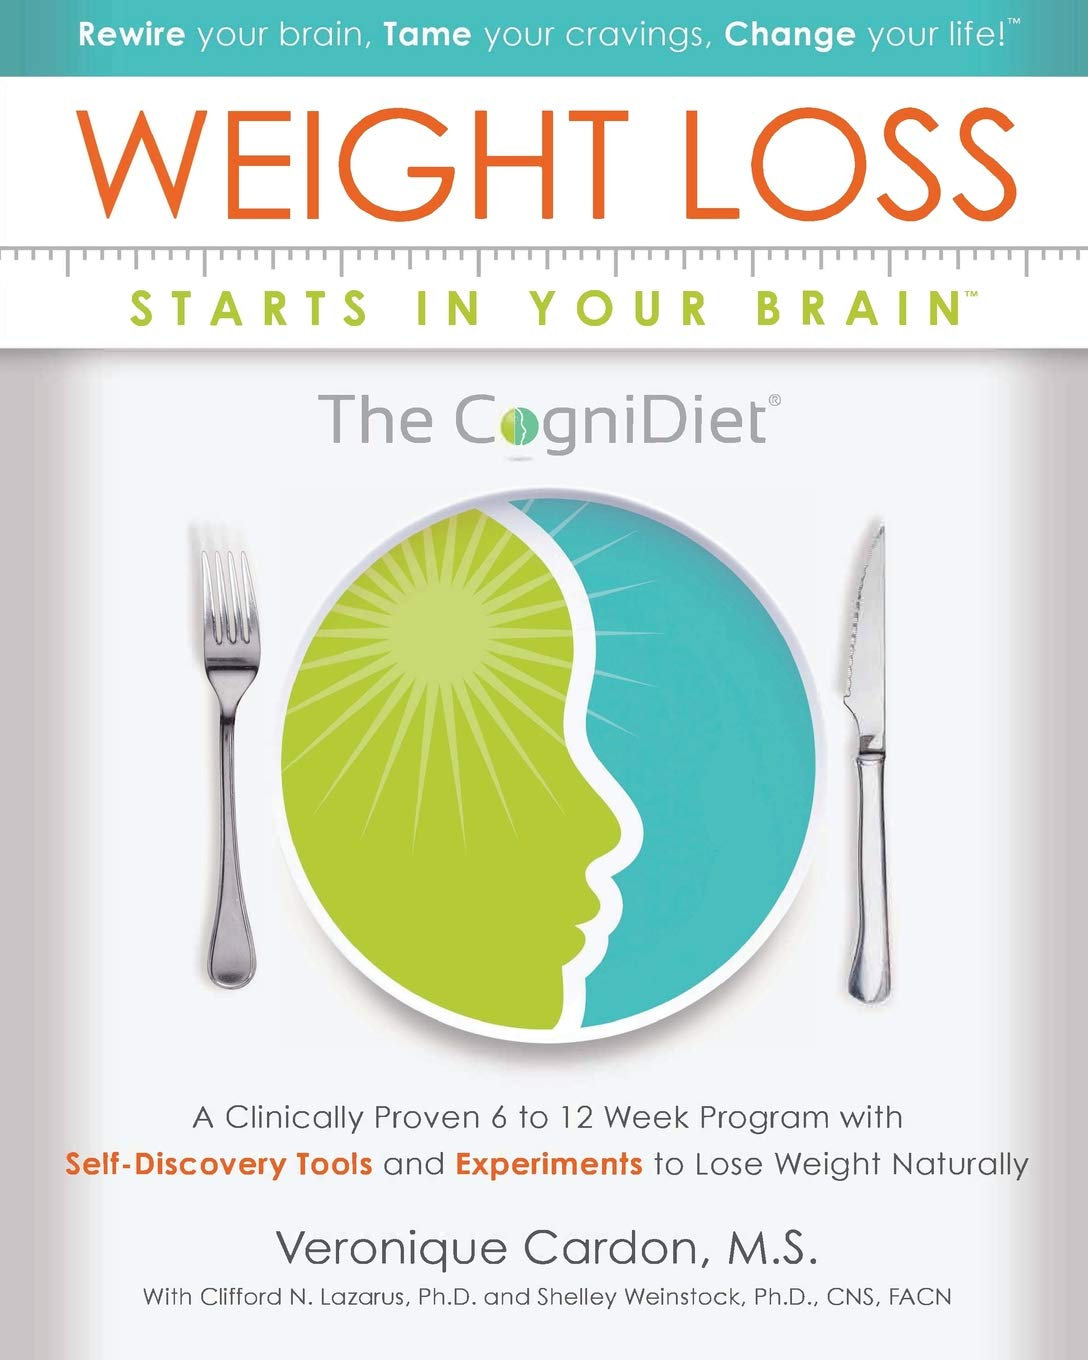 Read Online Weight Loss Starts In Your Brain: A Clinically Proven 6 to 12 Week Program with Self-Discovery Tools and Experiments to Lose Weight Naturally. PDF